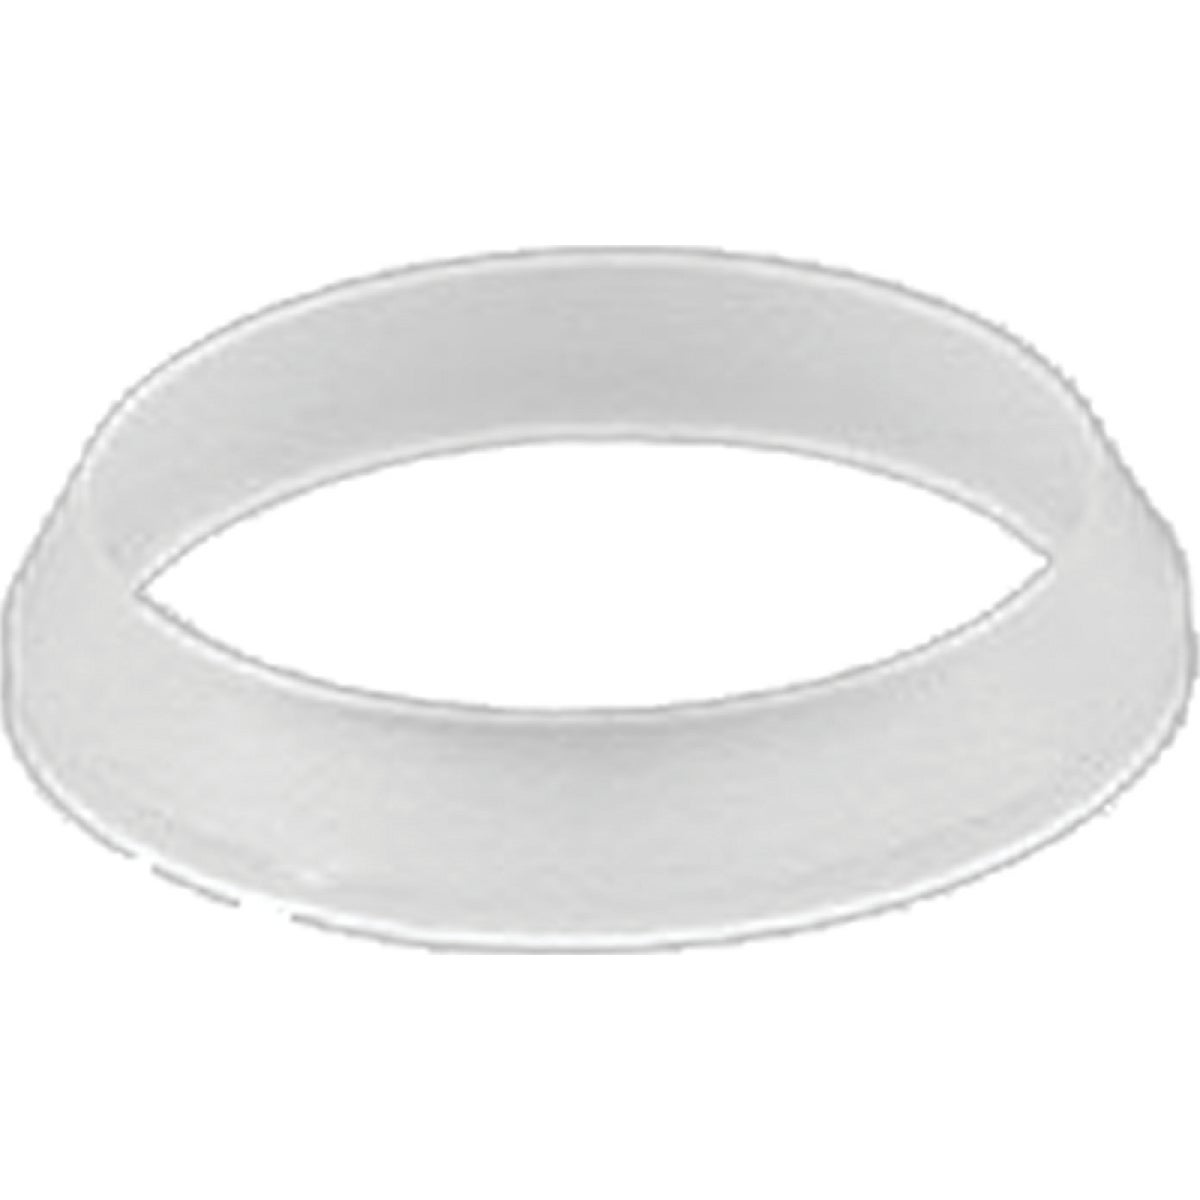 "1-1/4"" SLIP JOINT WASHER"